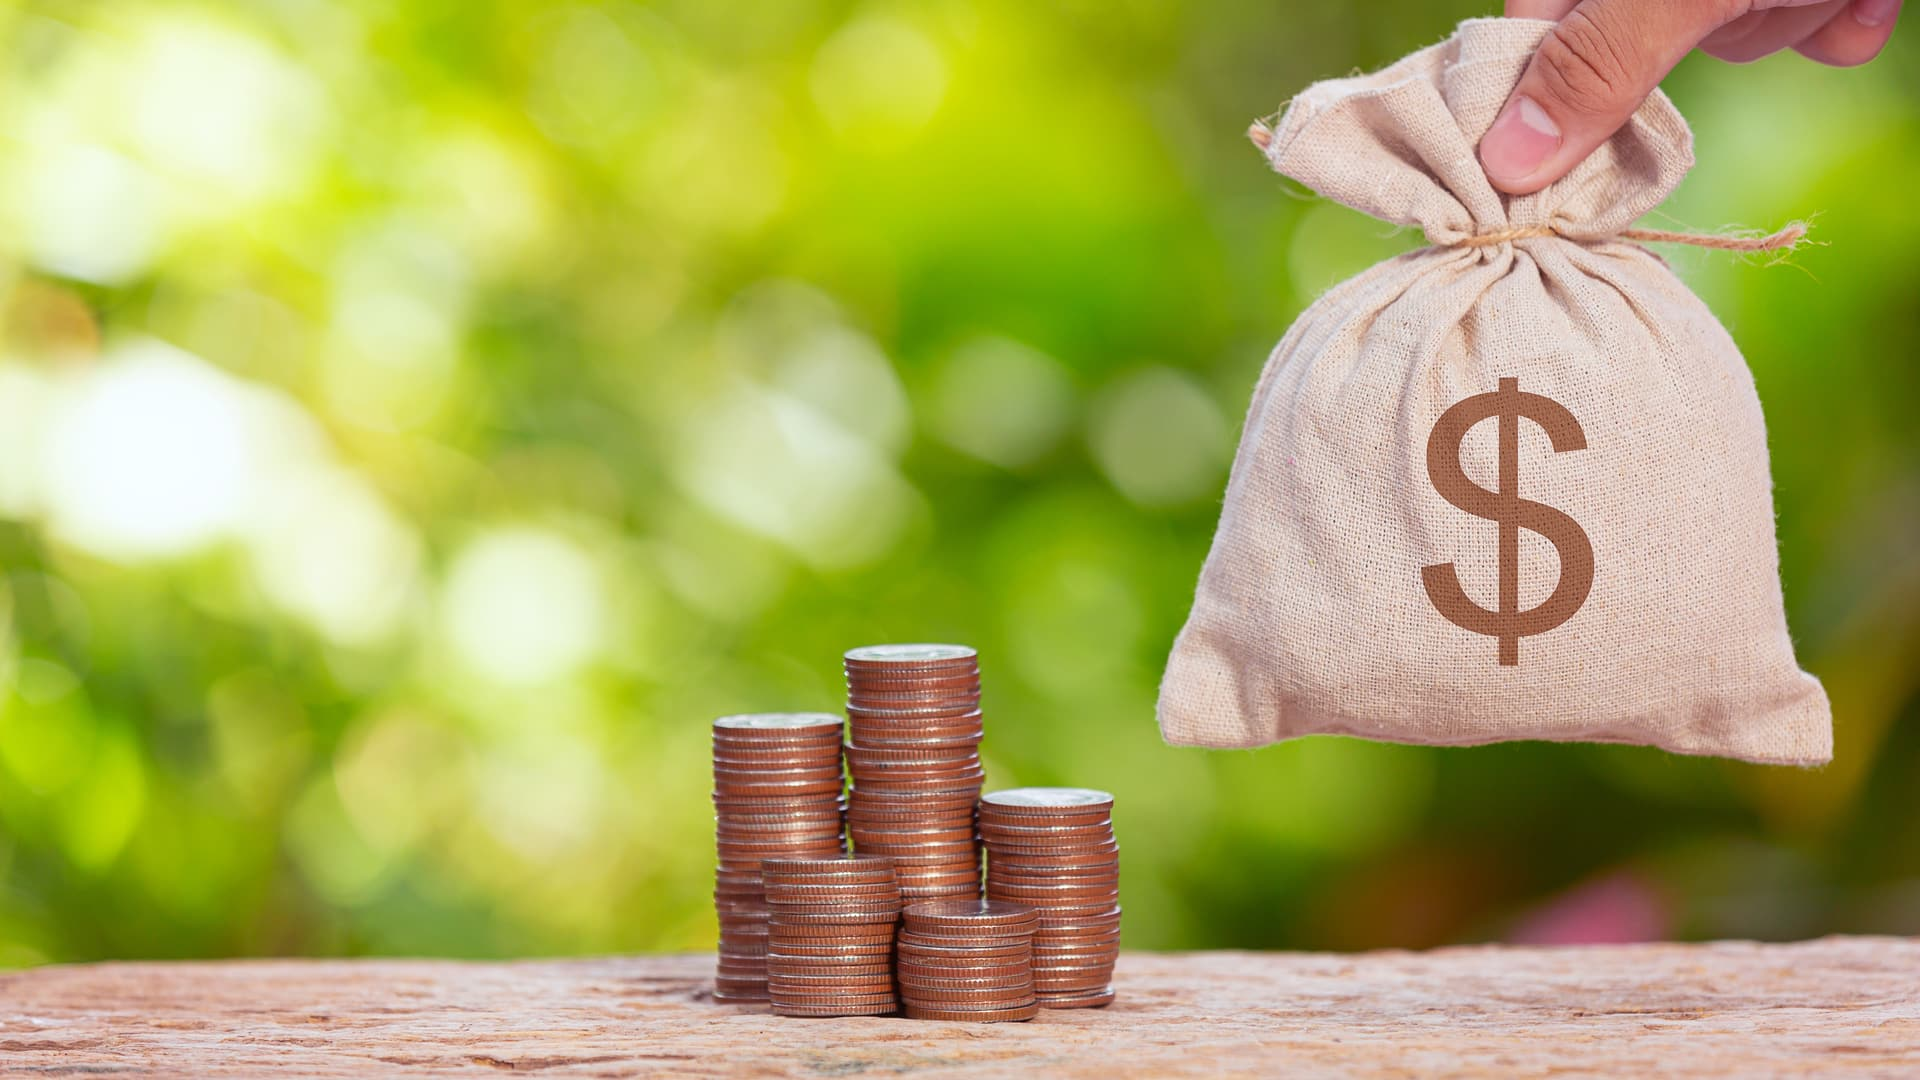 Akudo gets USD 4.2 mn in funding from Y Combinator, JAFCO Asia, others